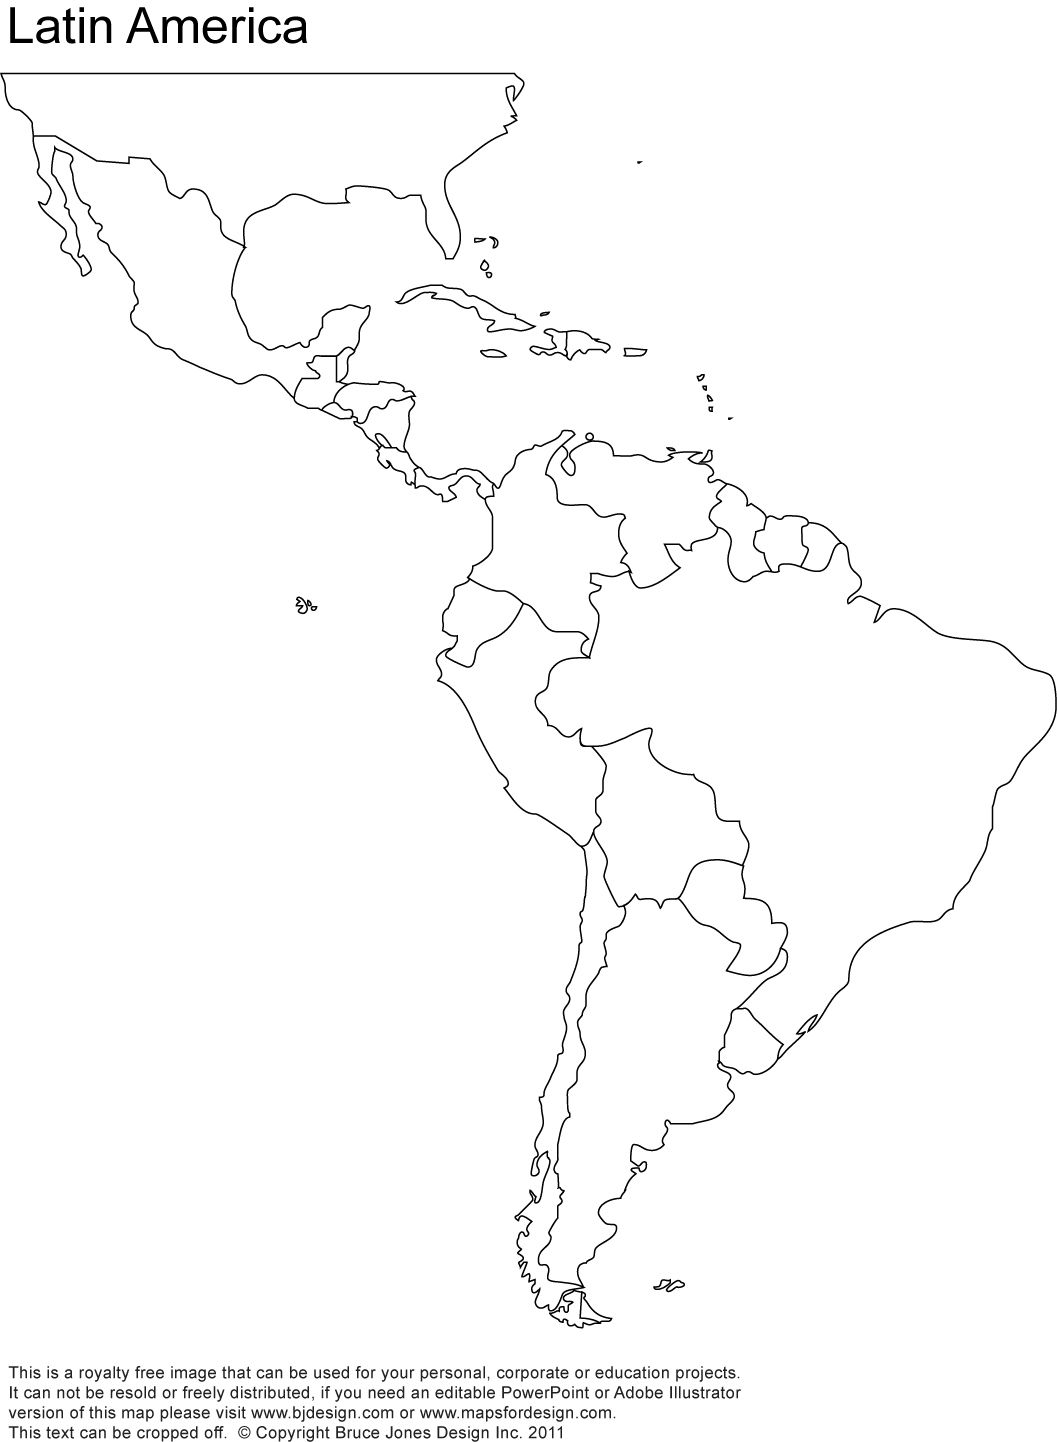 Blank Latin America Map free blank map of north and south america | Latin America